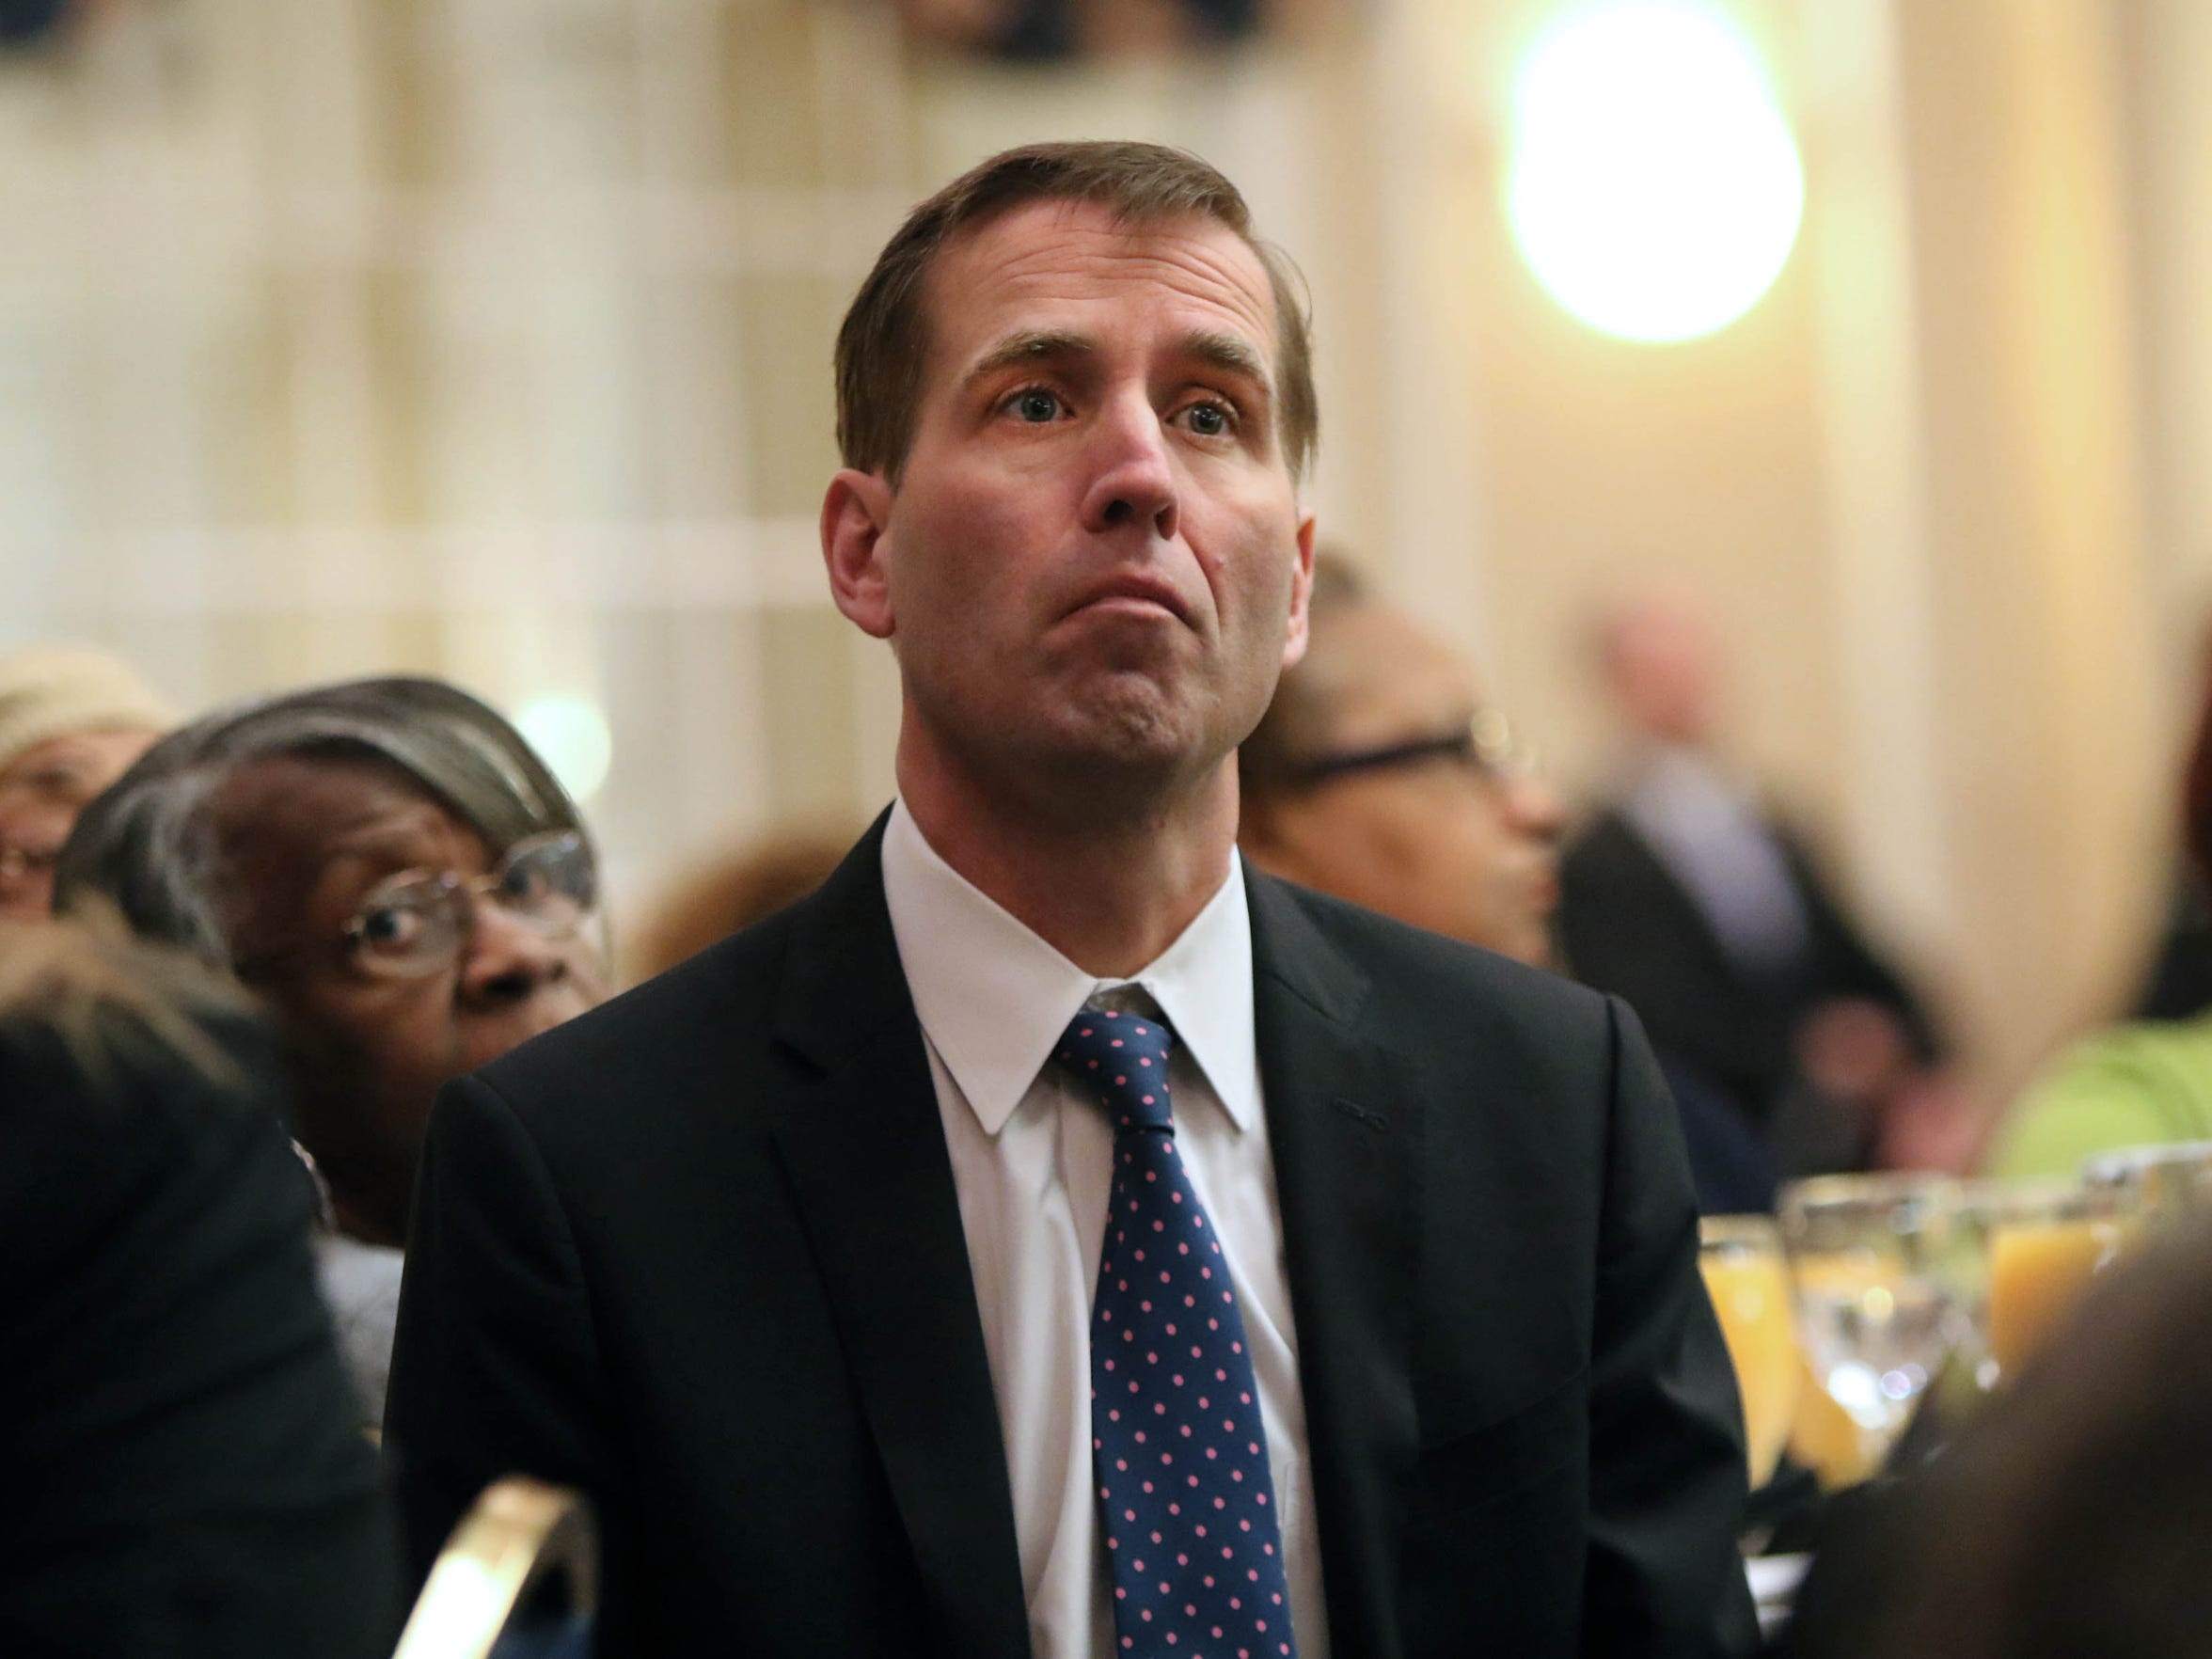 Beau Biden, the eldest son of the vice president, died Saturday, according to a statement by the White House.